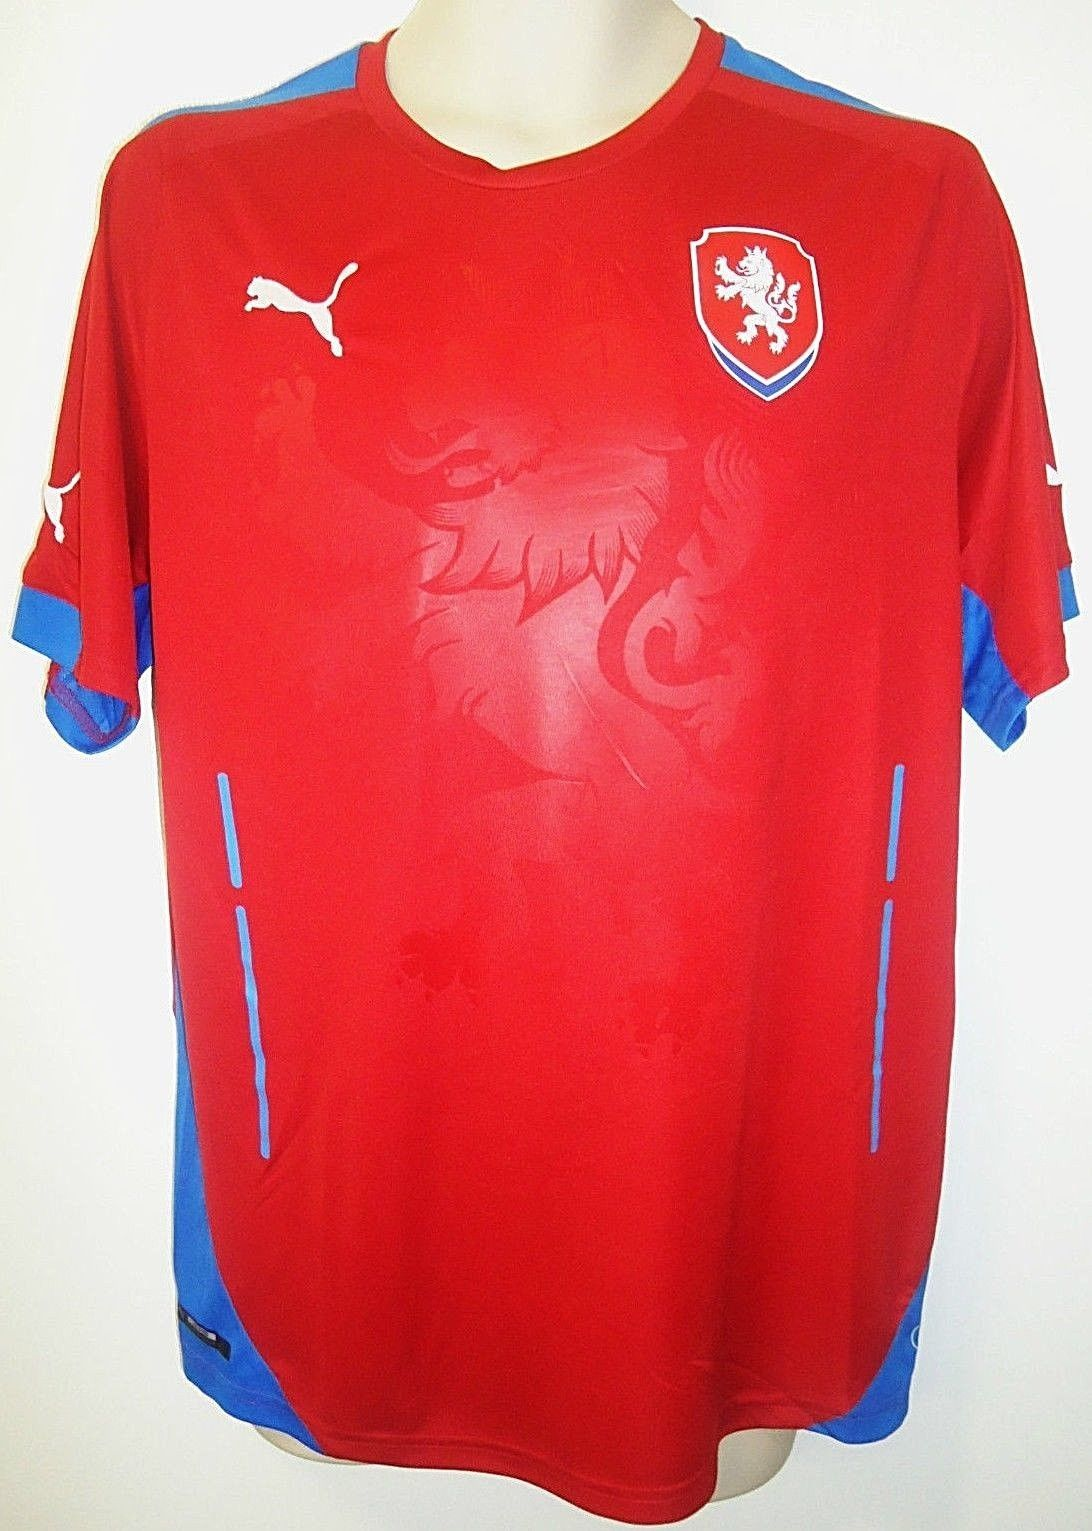 841b9455ff7 Puma - Czech Republic - Home - Large - Red - and 50 similar items